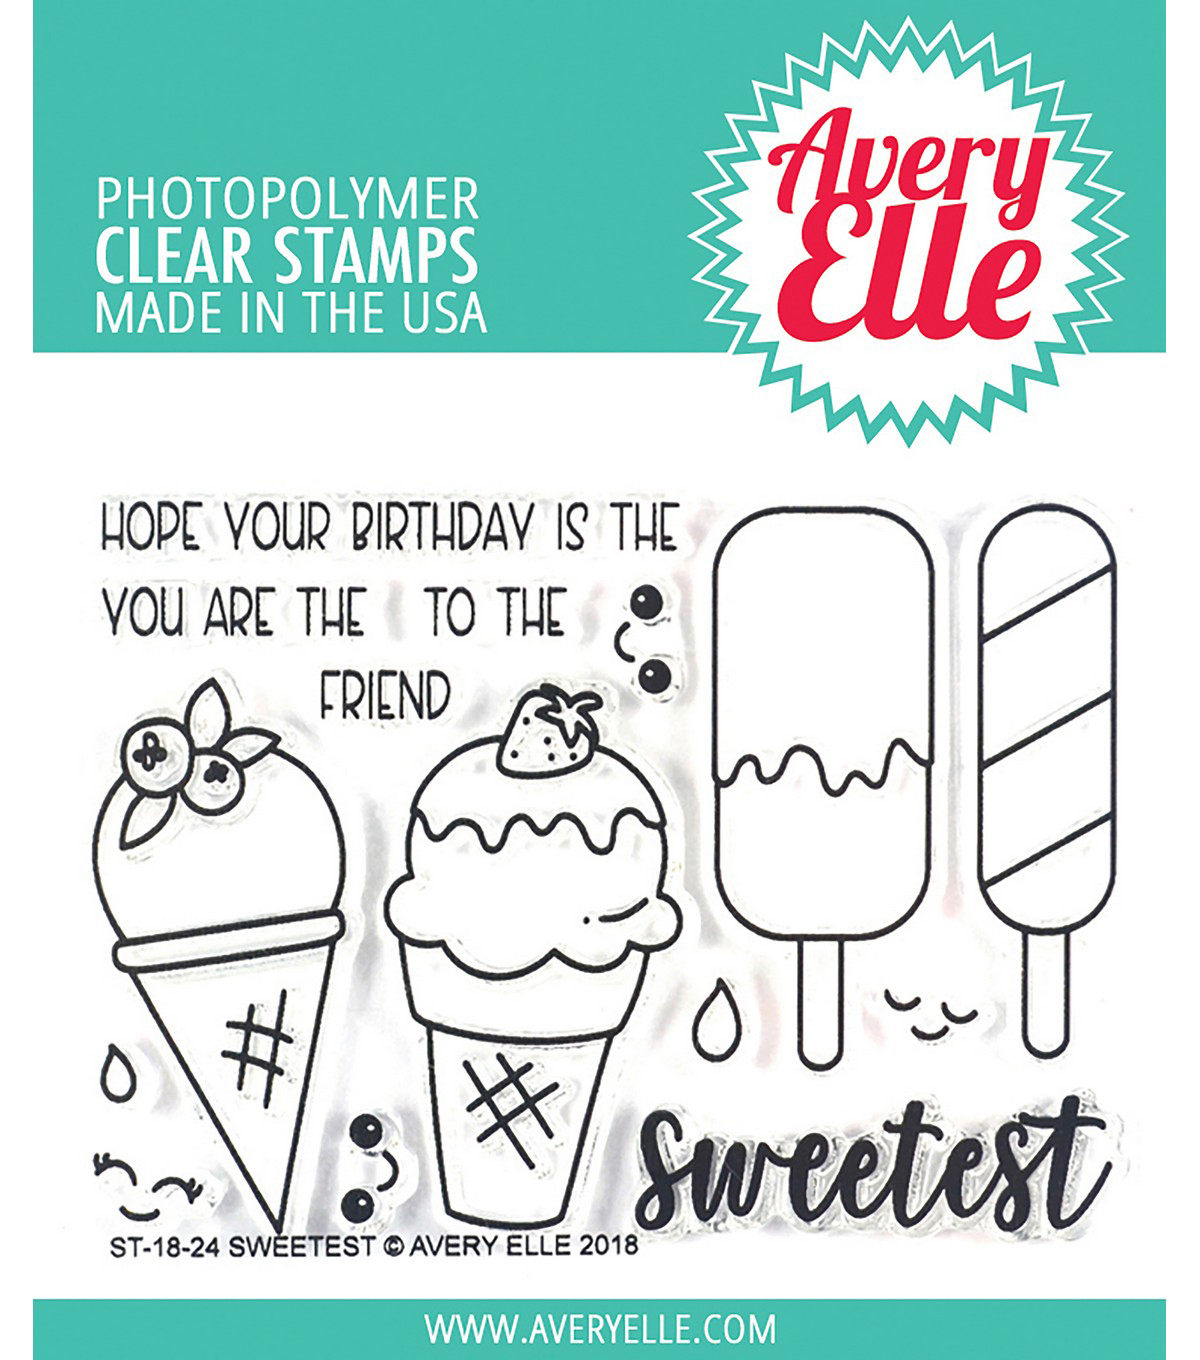 Avery Elle 15 pk Photopolymer Clear Stamps-Sweetest